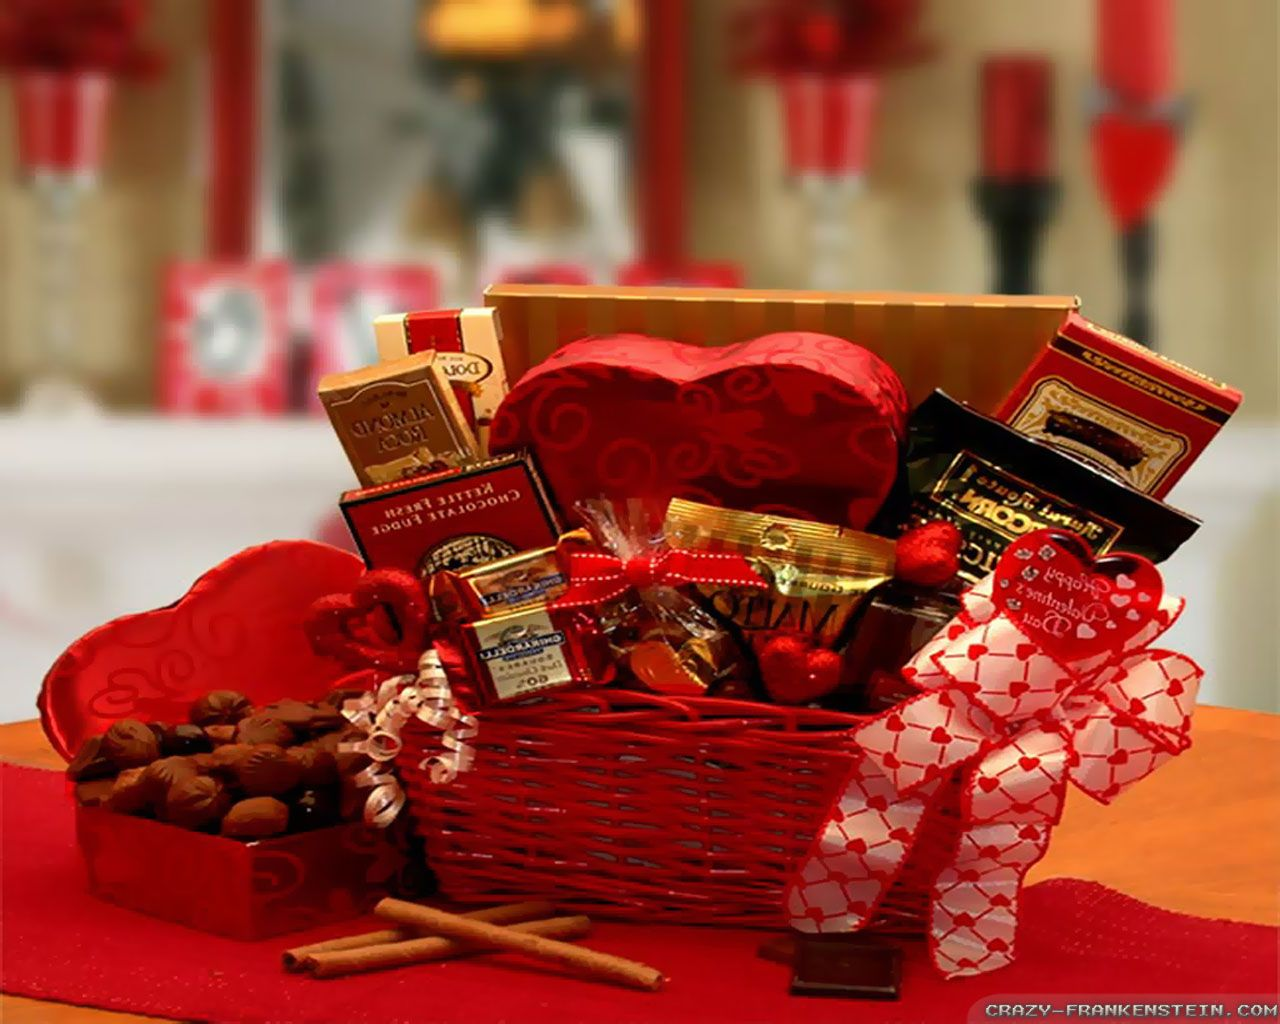 Valentines Day Gift Ideas 2014 Gift For Him Her Girls Boys Valentine Gift Baskets Valentine S Day Gift Baskets Romantic Valentines Day Ideas